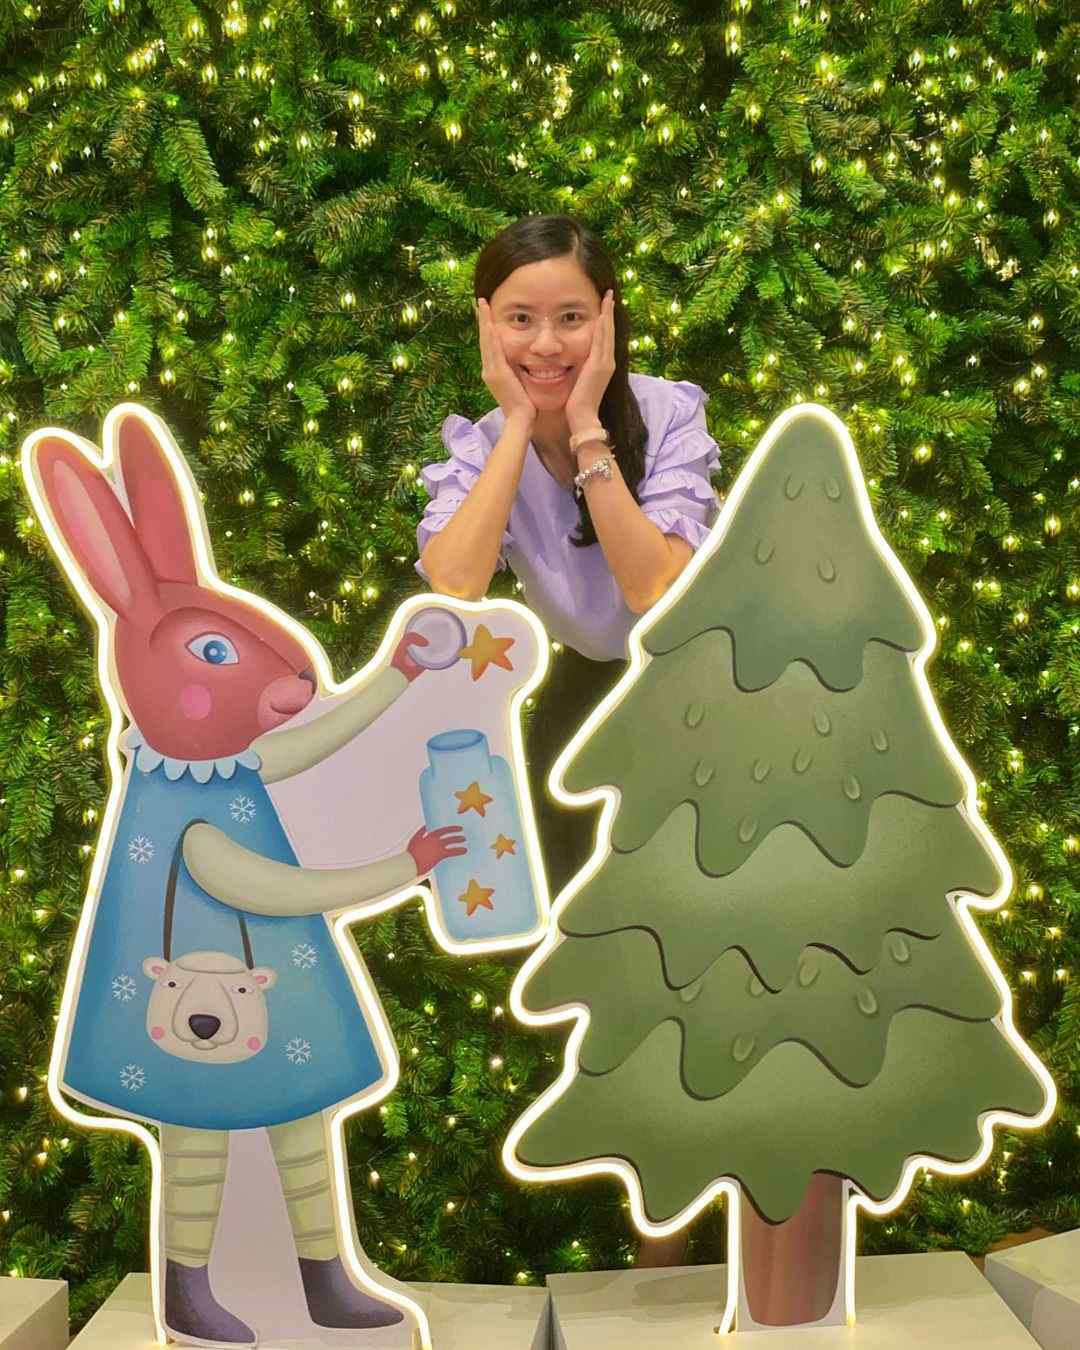 Rabbit decorating a Christmas tree with a star